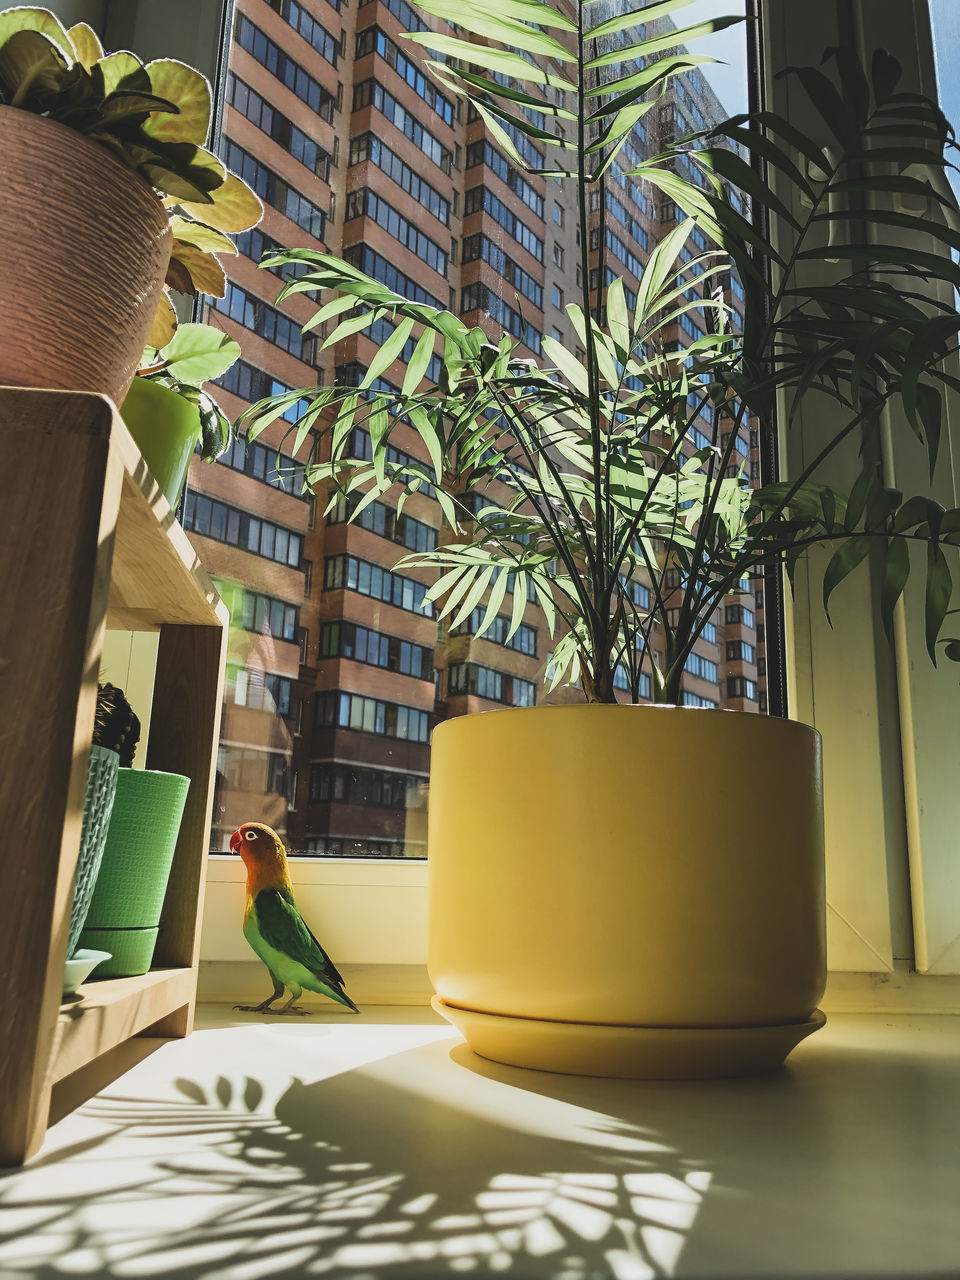 POTTED PLANTS ON TABLE IN WINDOW